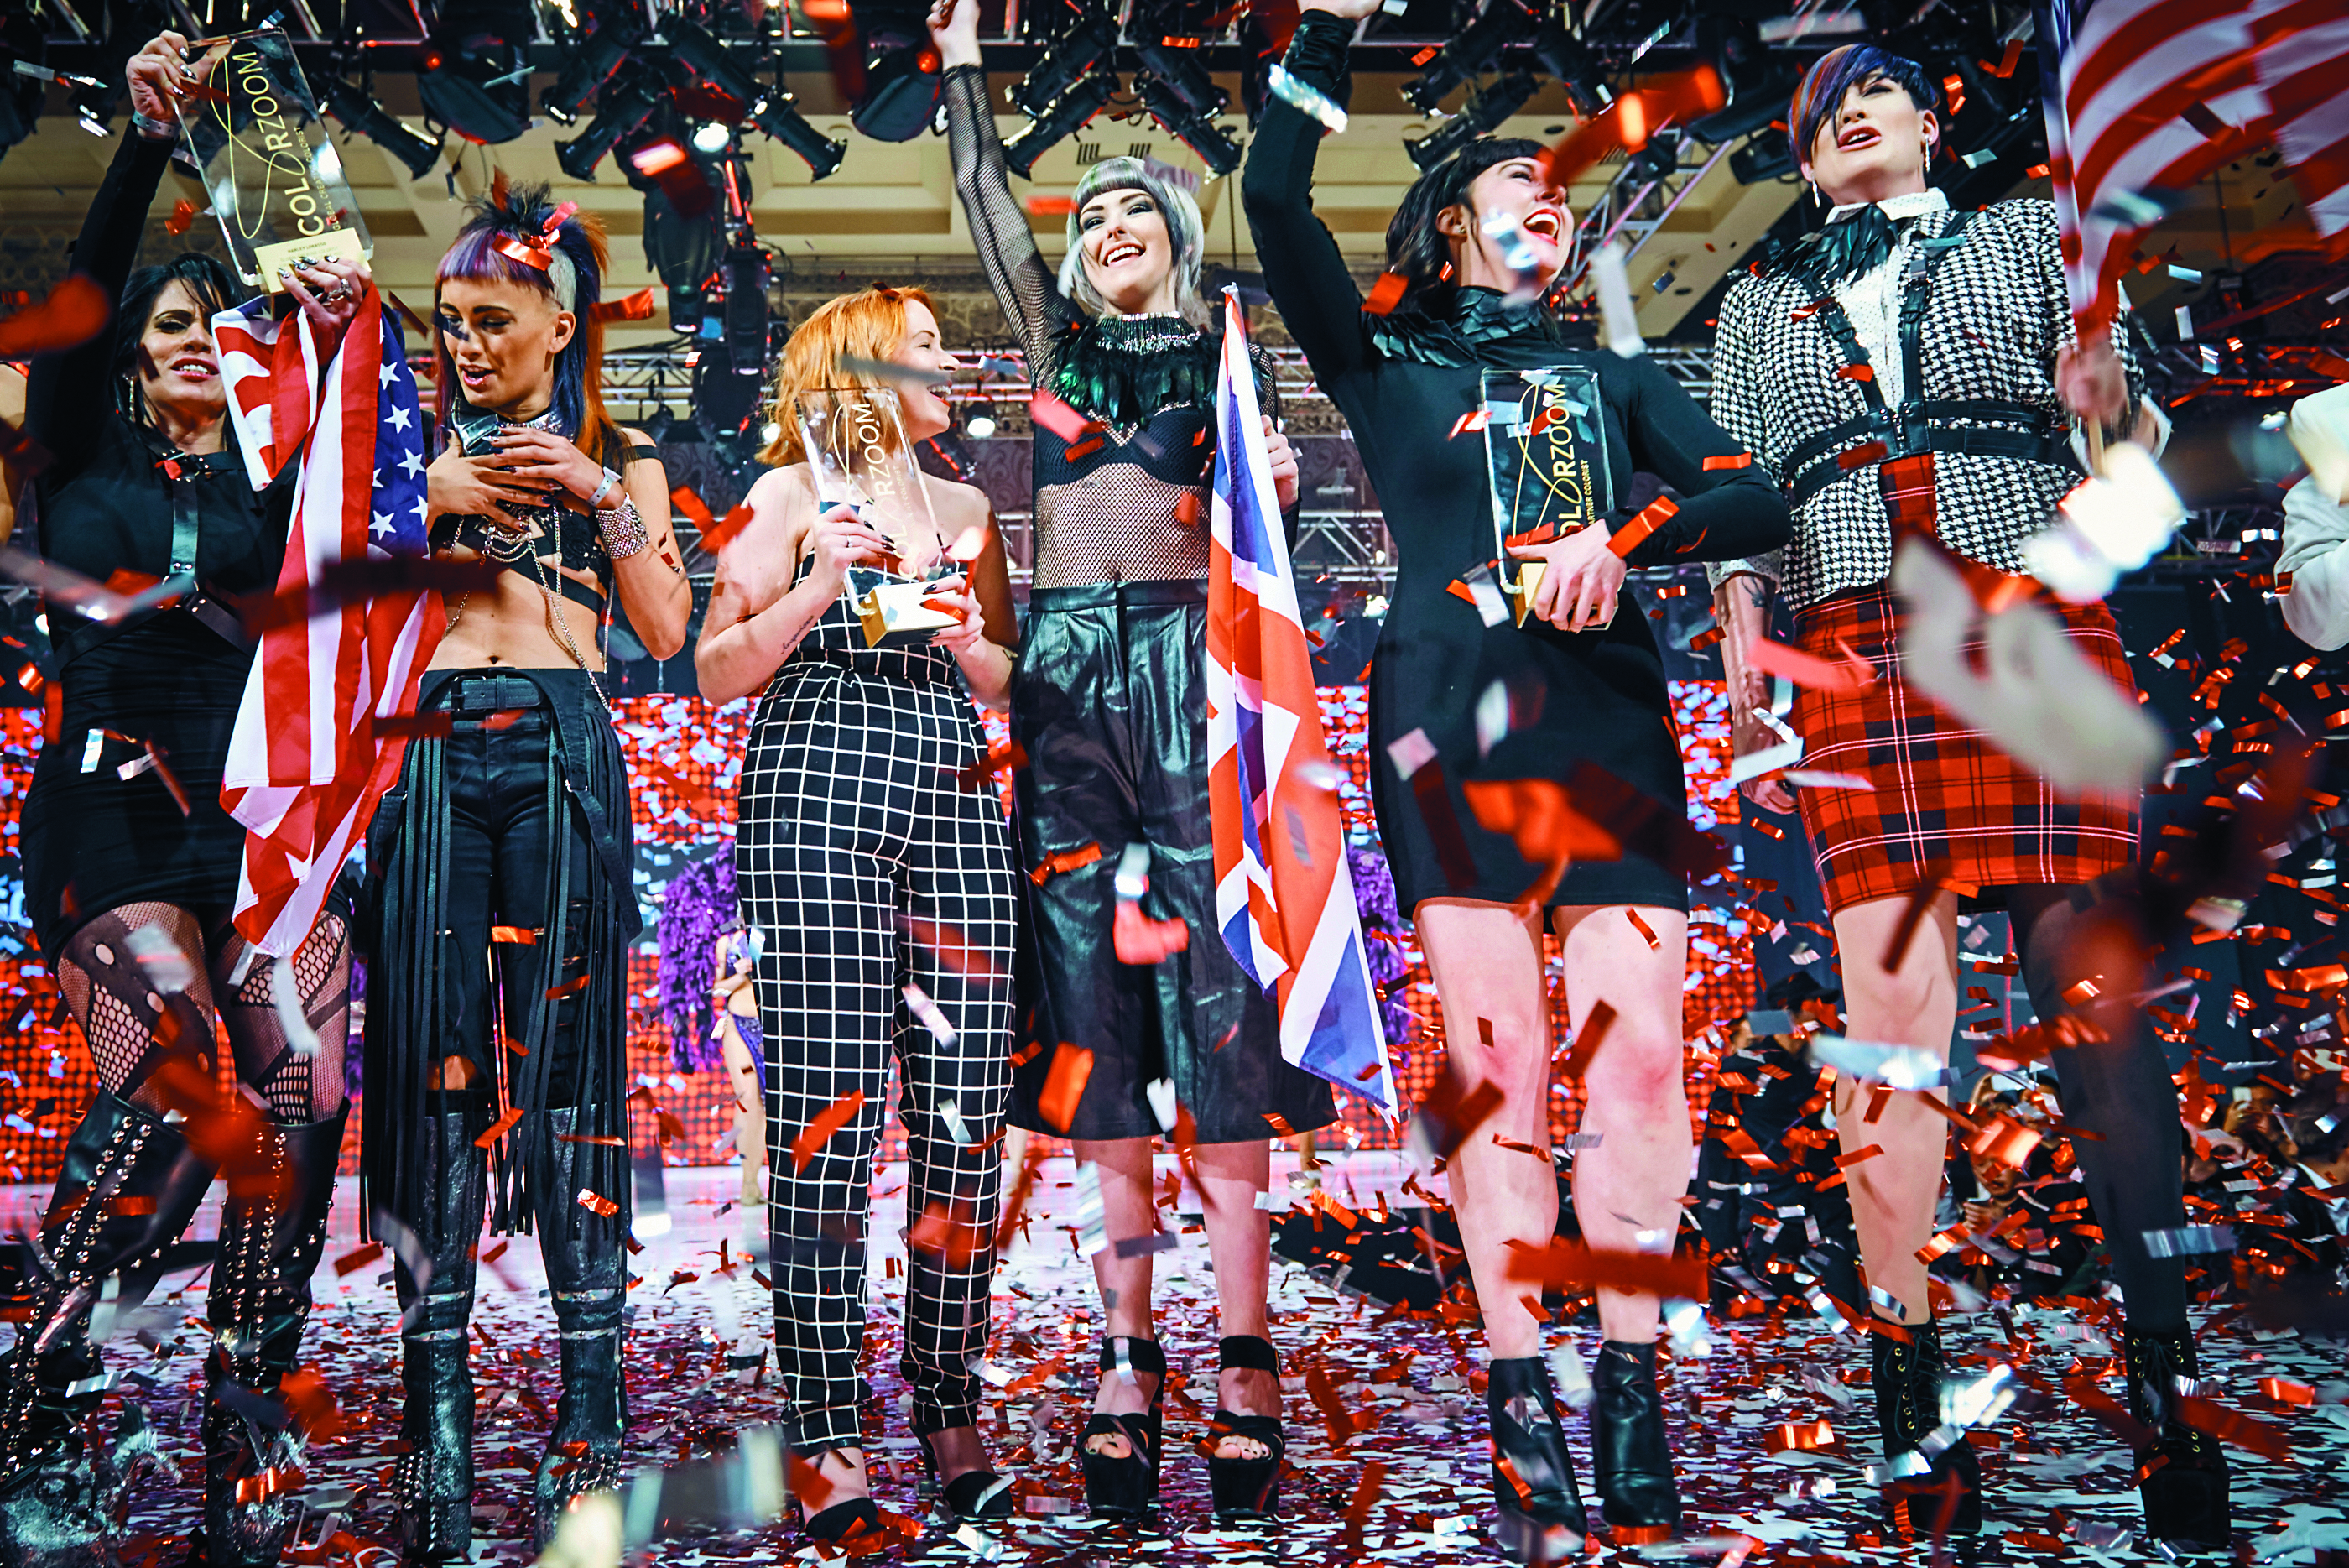 Gold medal winners Harley Lobasso ( U.S., Creative Colorist). Natalie Cara Jones (UK, New Talent) and Corinne Brown (U.S., Partner) are showered with confetti.